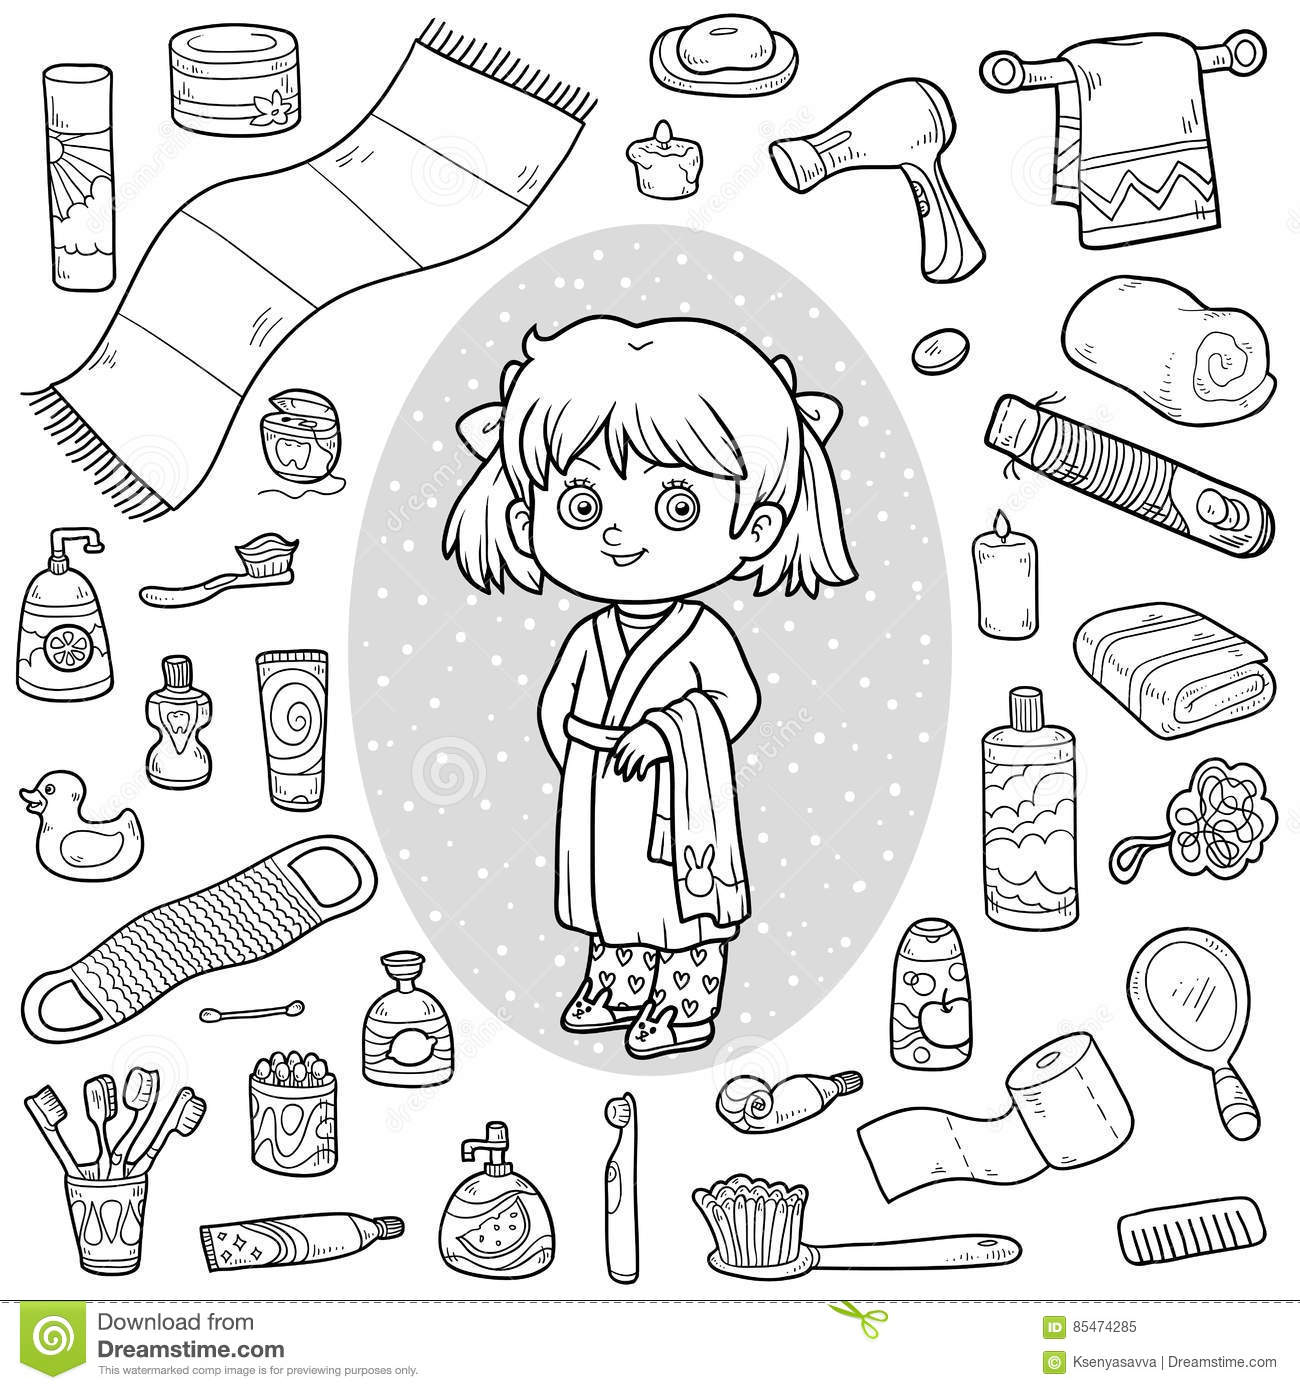 Cartoon hygiene objects coloring page cartoon vector for Personal hygiene coloring pages